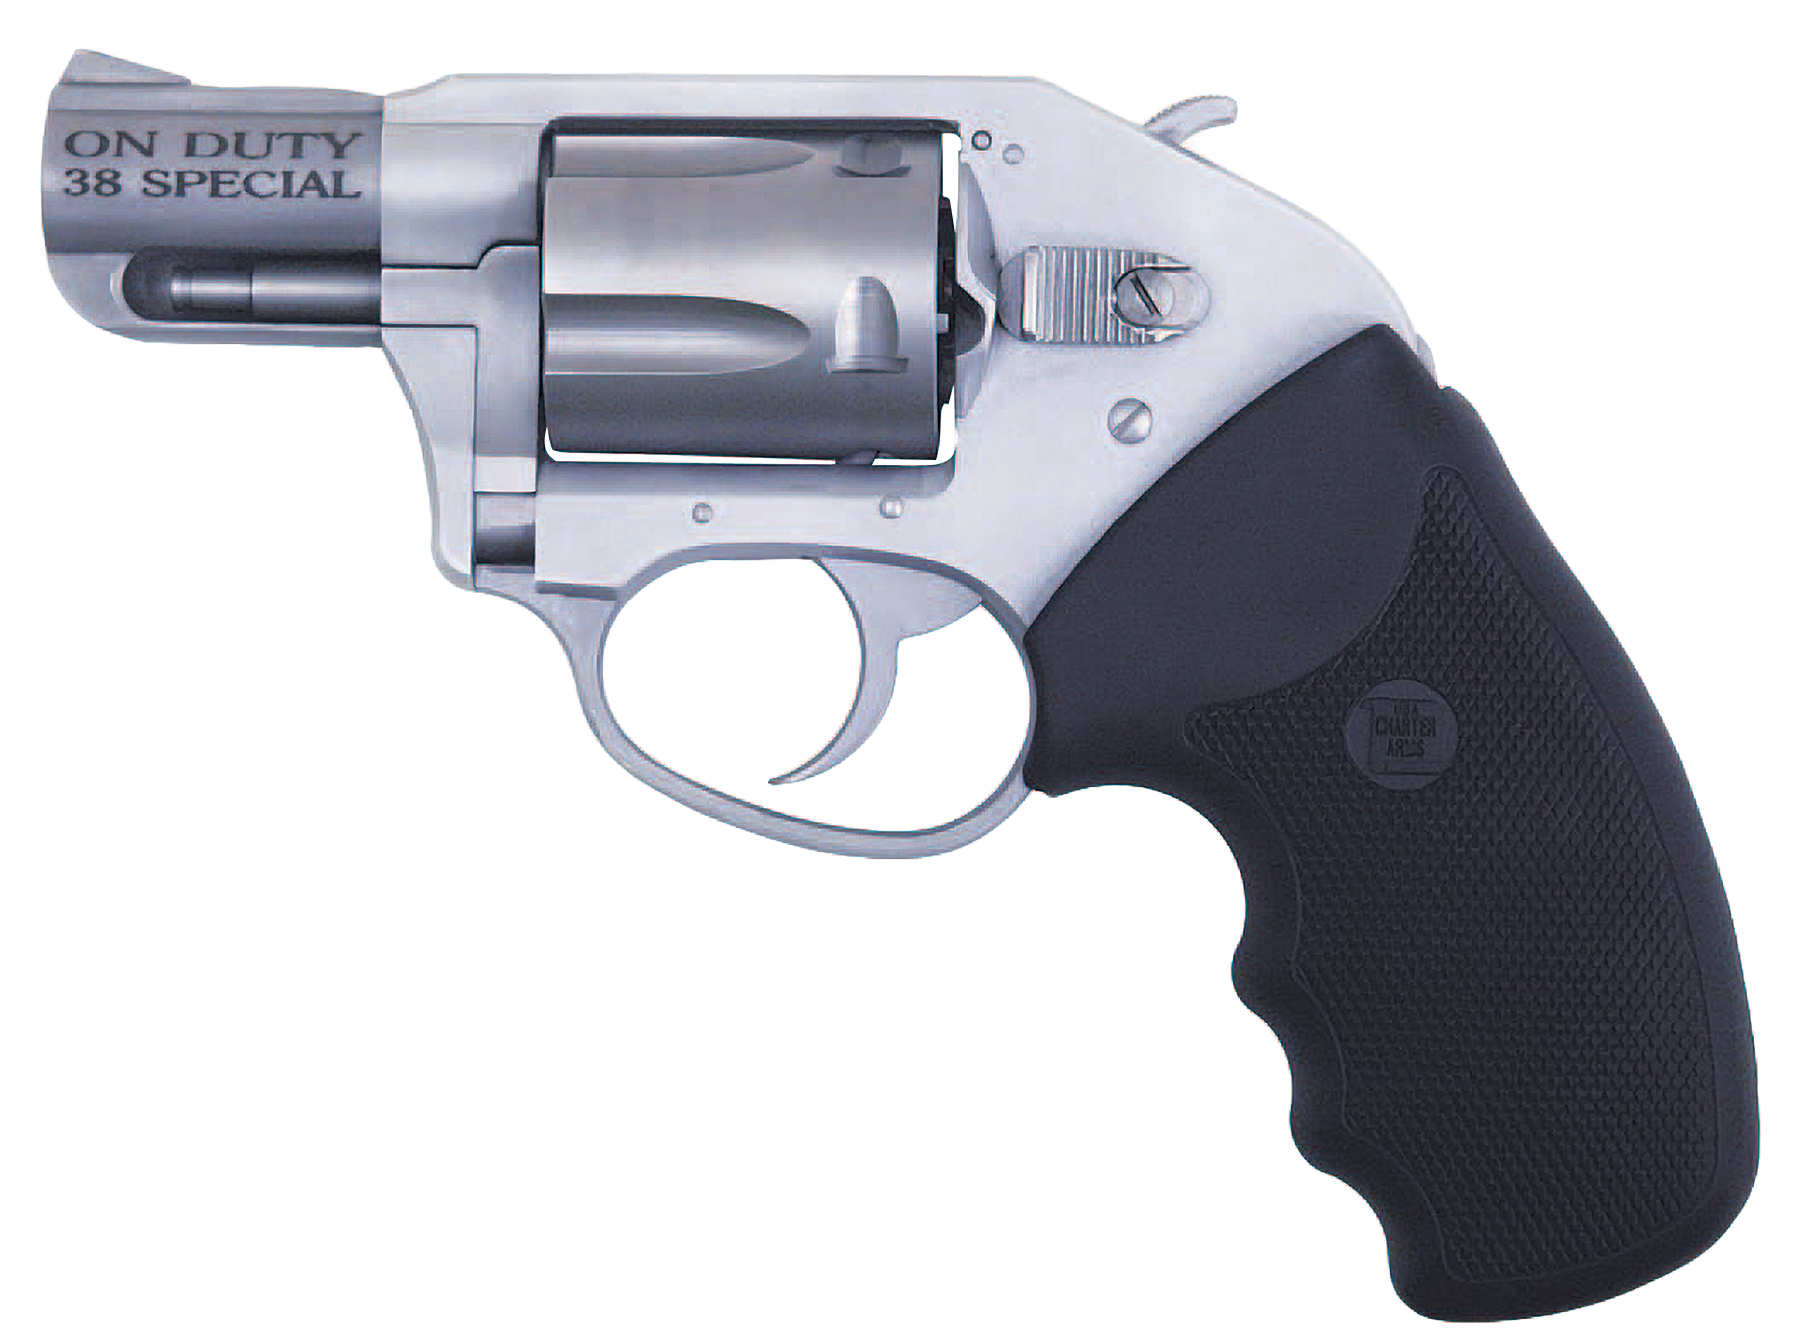 Charter Arms 53810 Undercover On Duty Single/Double 38 Special 2